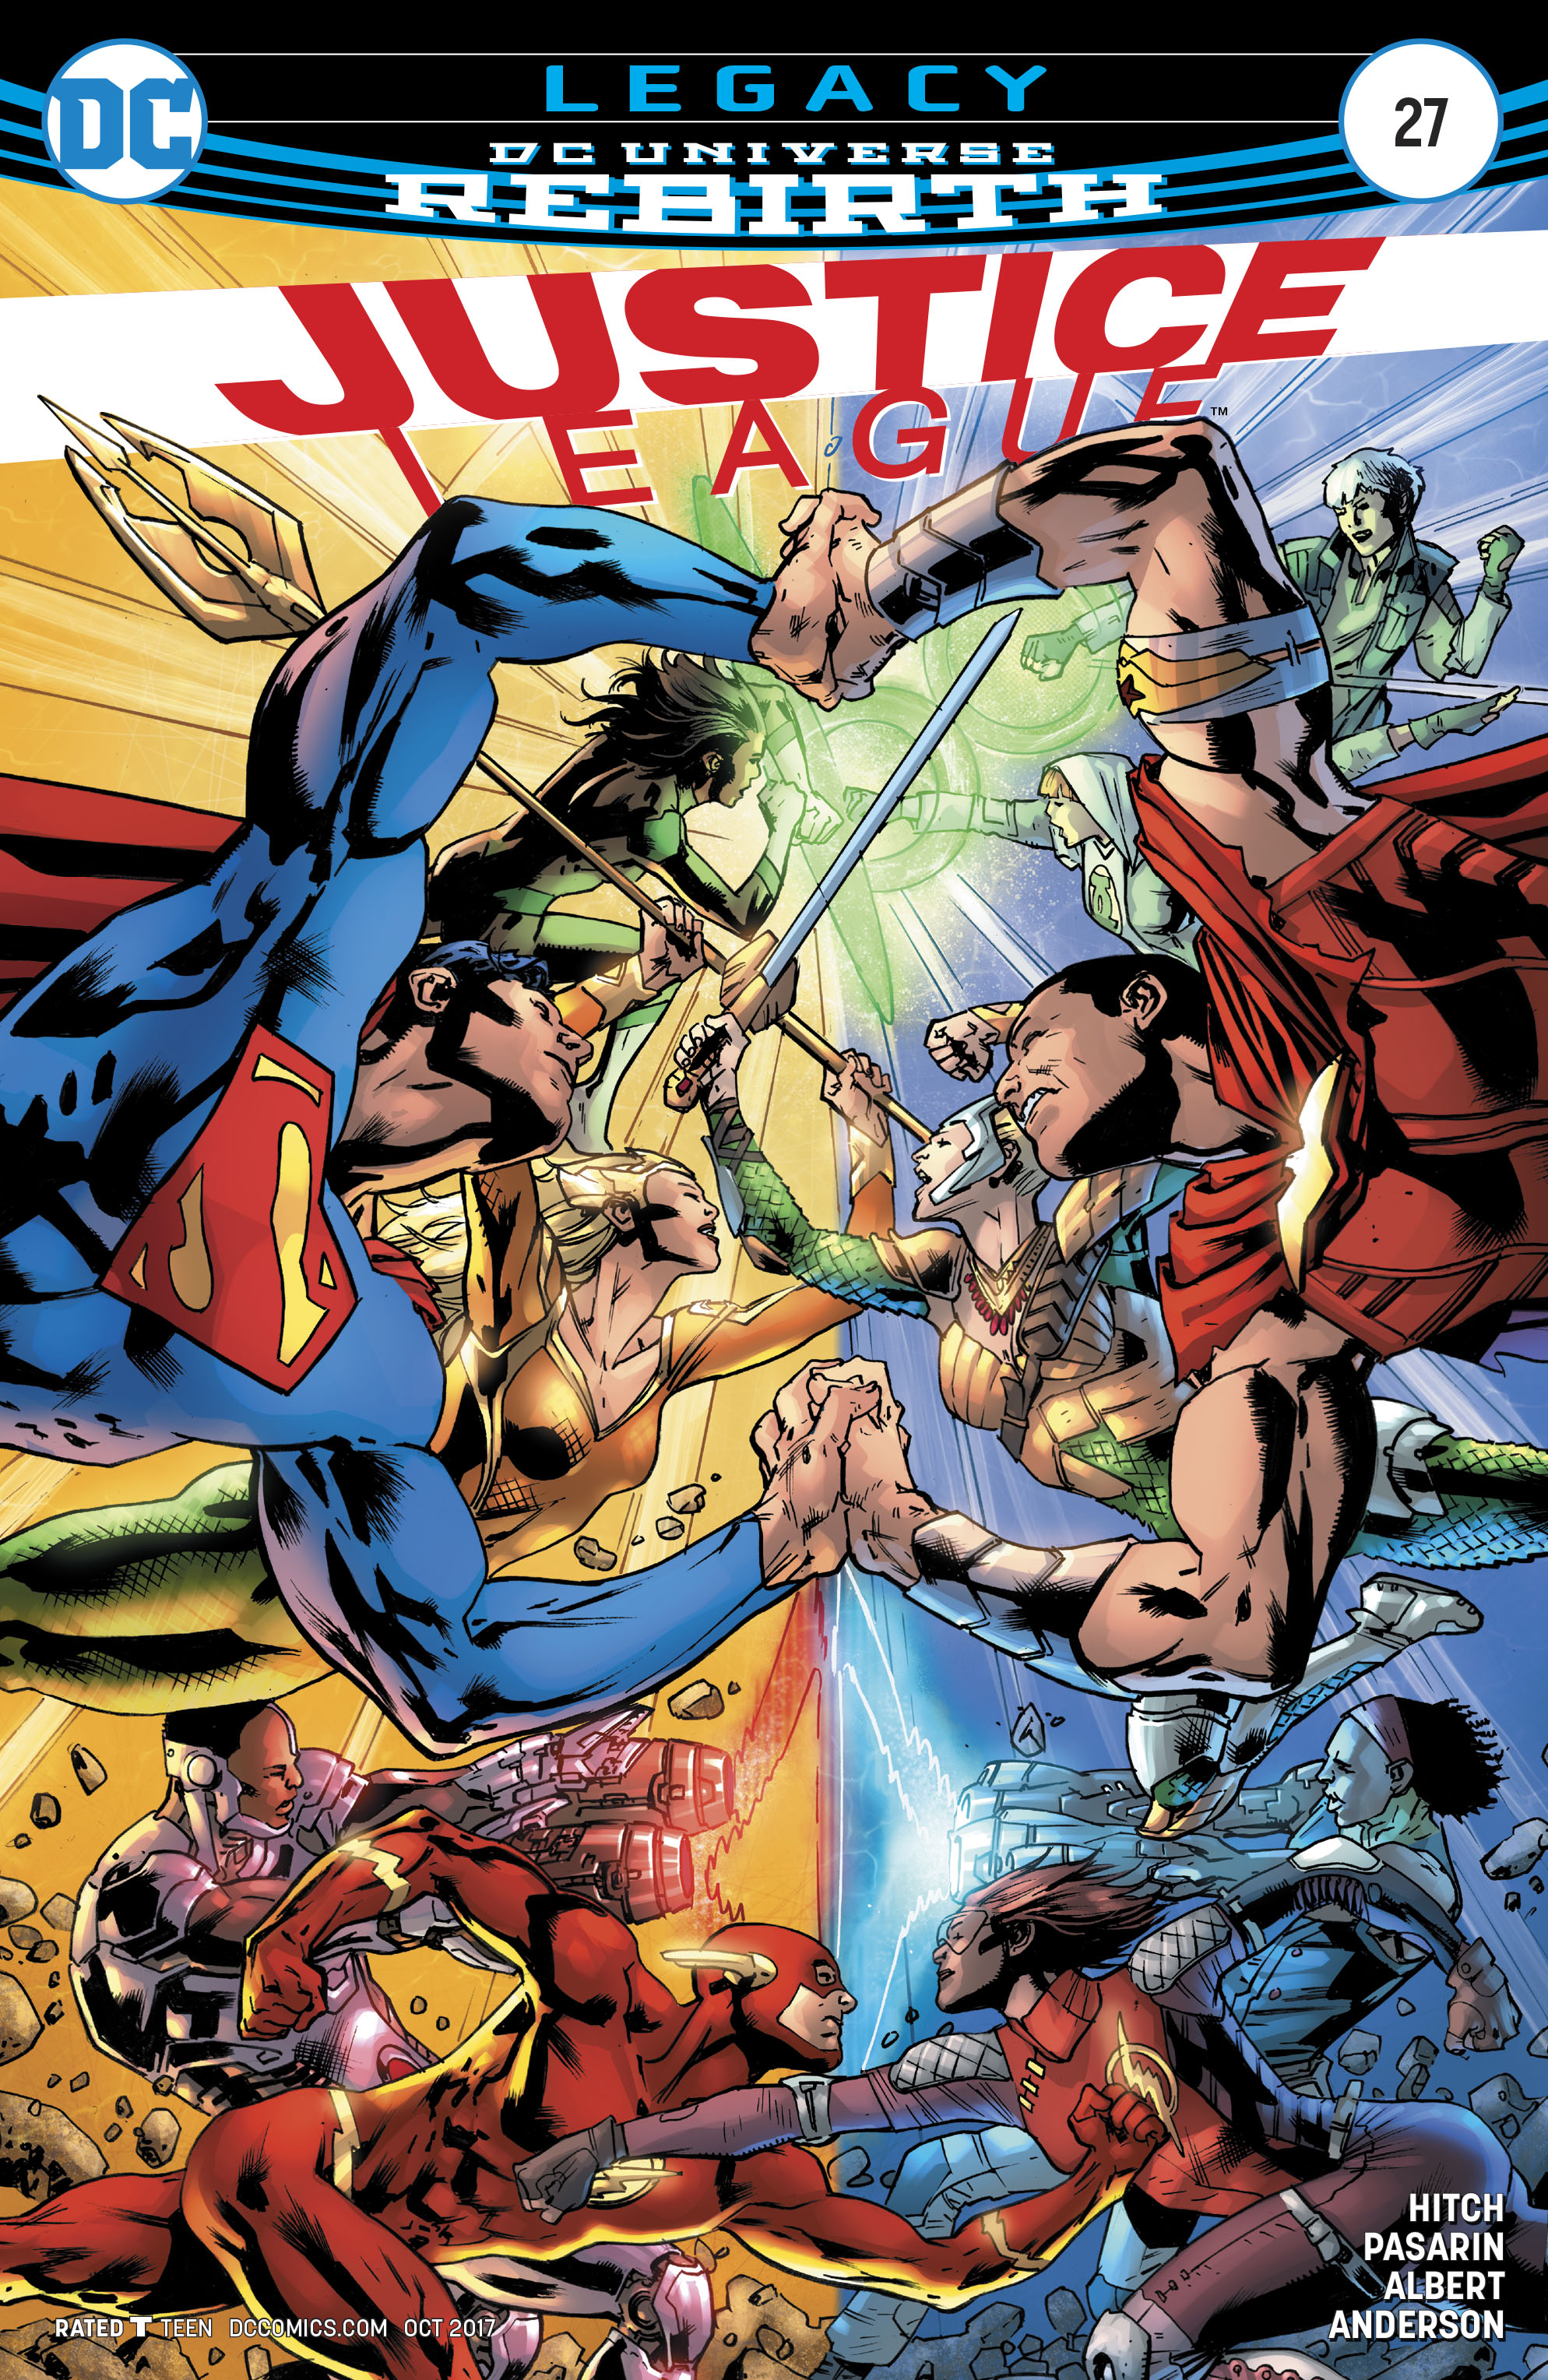 The Justice Tarot Card Meaning In Readings Verdict: DC Comics Rebirth Spoilers: Justice League #27 Reveals The